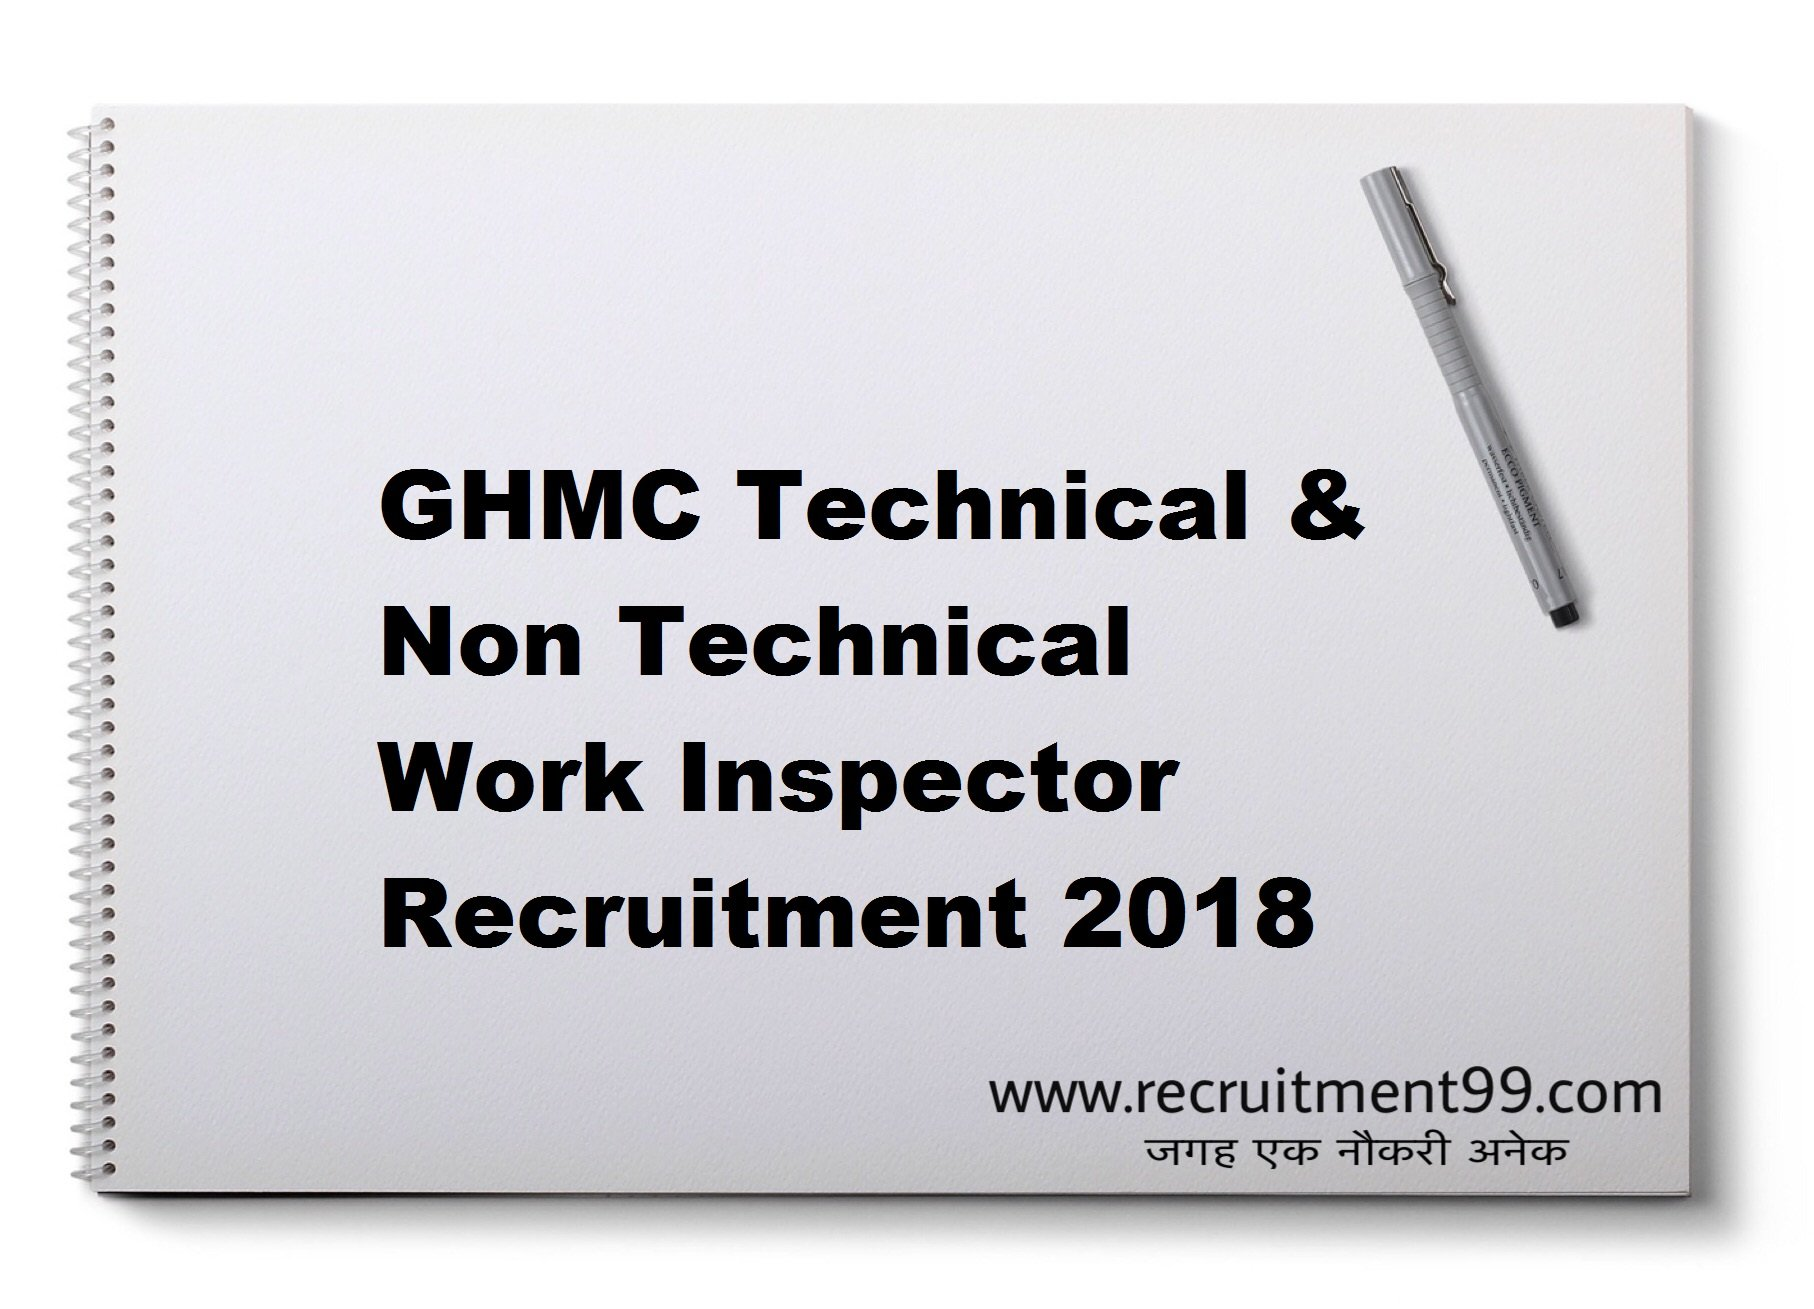 GHMC Technical & Non Technical Work Inspector Recruitment Admit Card Result 2018